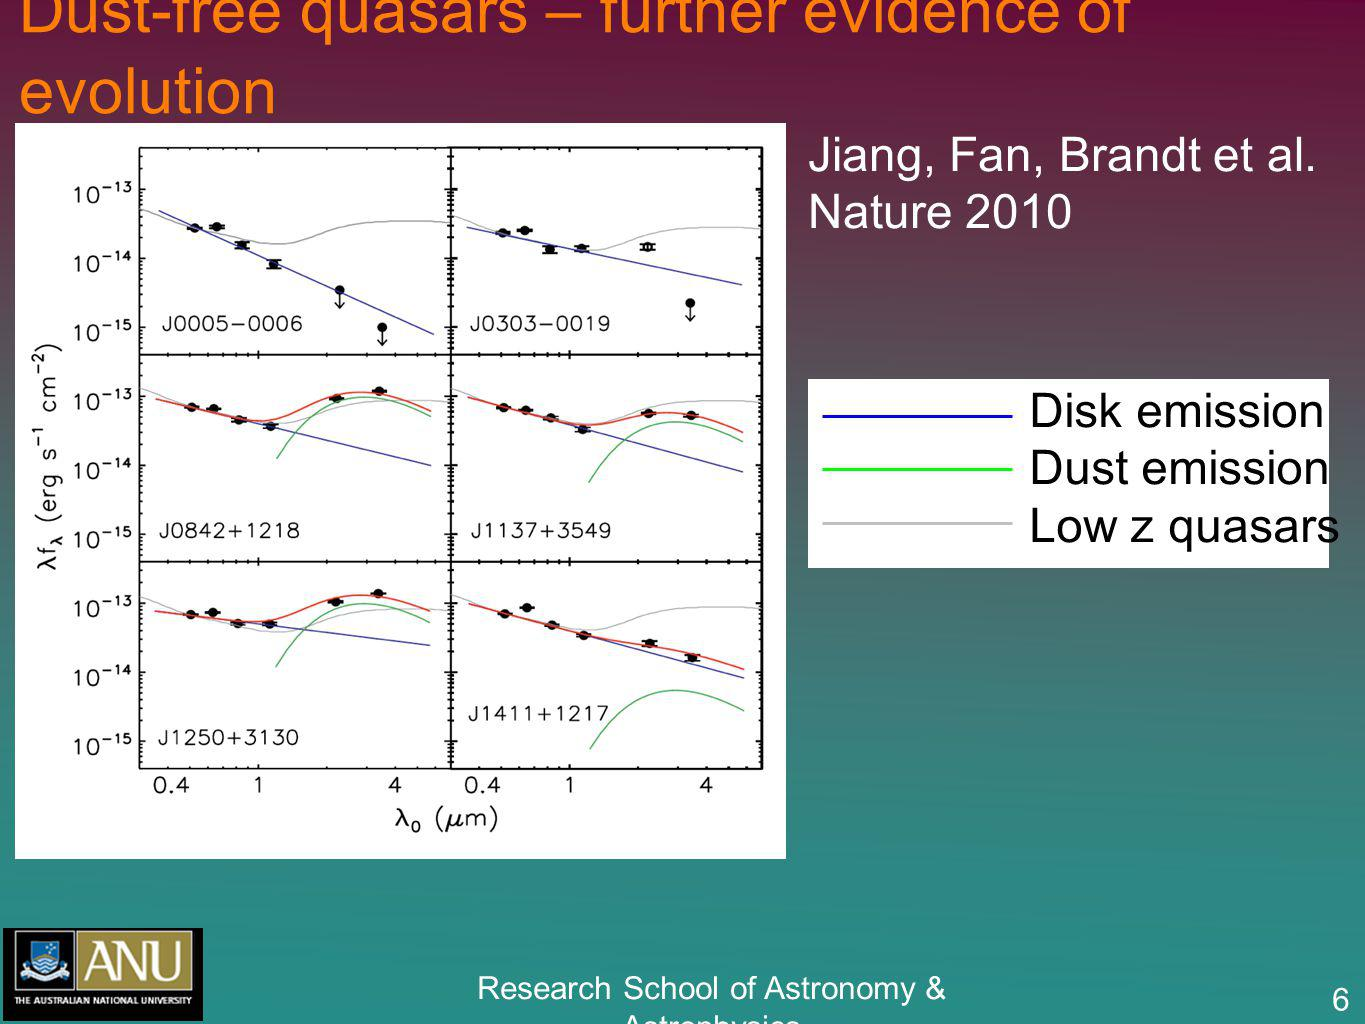 Research School of Astronomy & Astrophysics 6 Dust-free quasars – further evidence of evolution Jiang, Fan, Brandt et al. Nature 2010 Disk emission Du